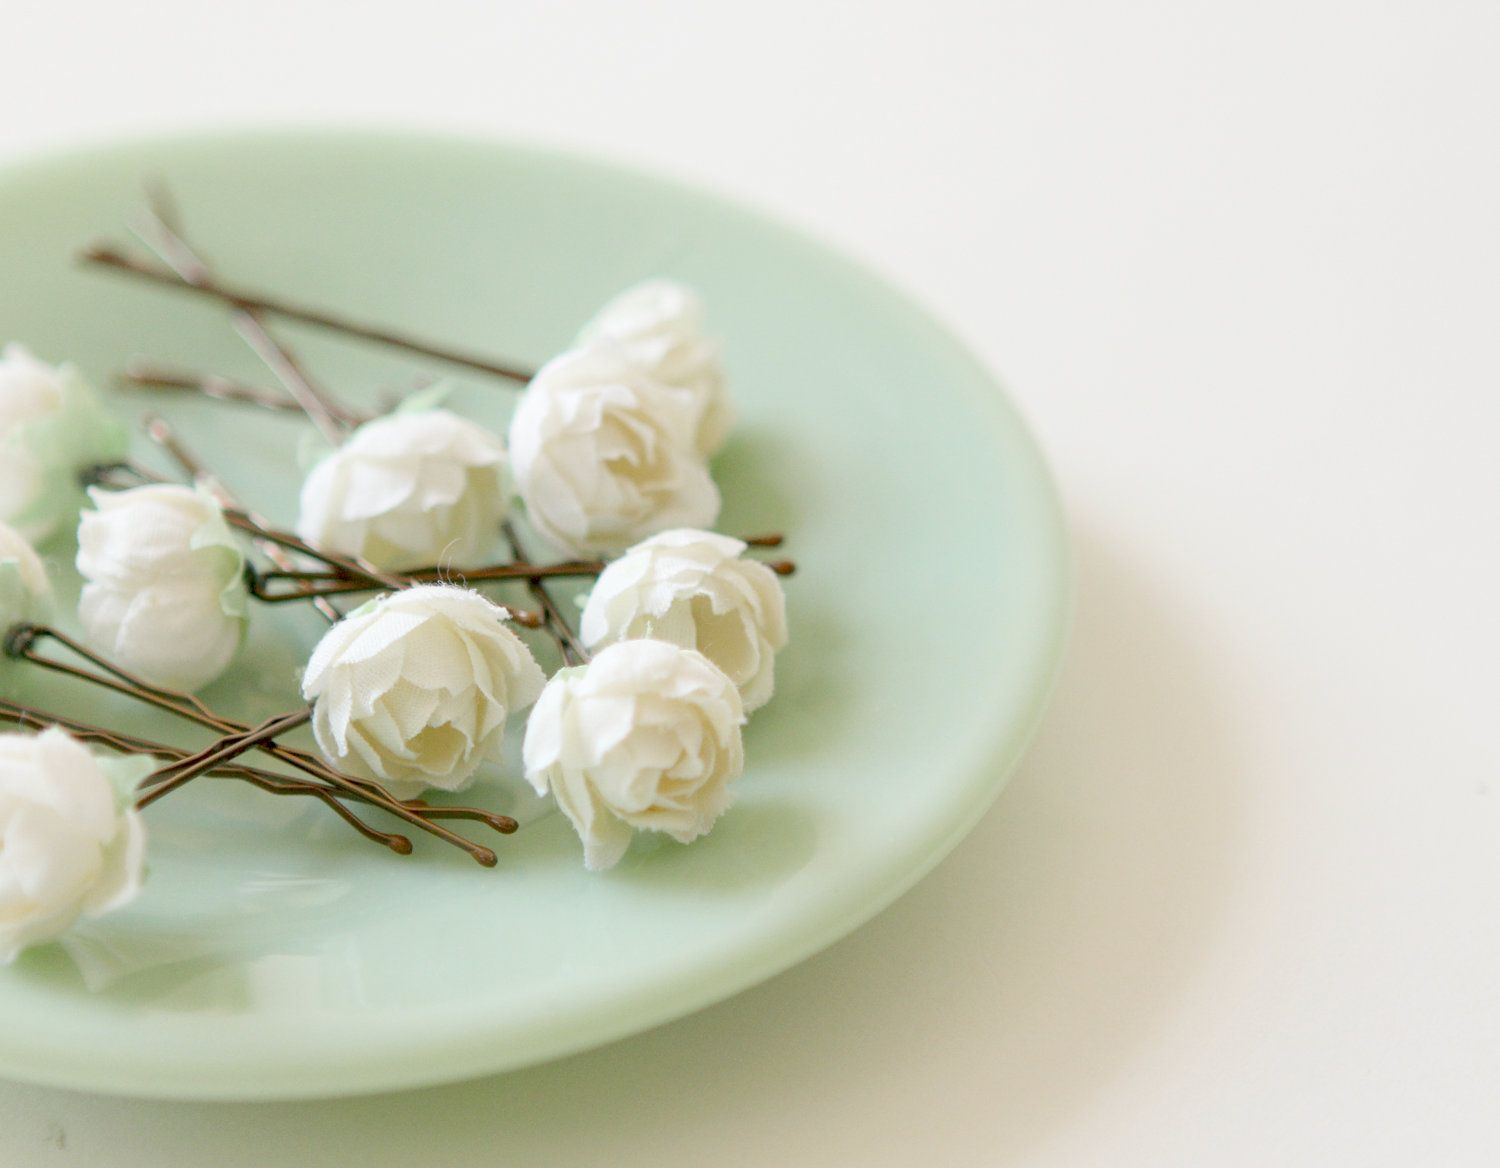 White rose bobby pins flower hair clips bridal accessory bobbies bridal hair clips wedding flower pins ivory rose bobby pins pemberley set mightylinksfo Image collections